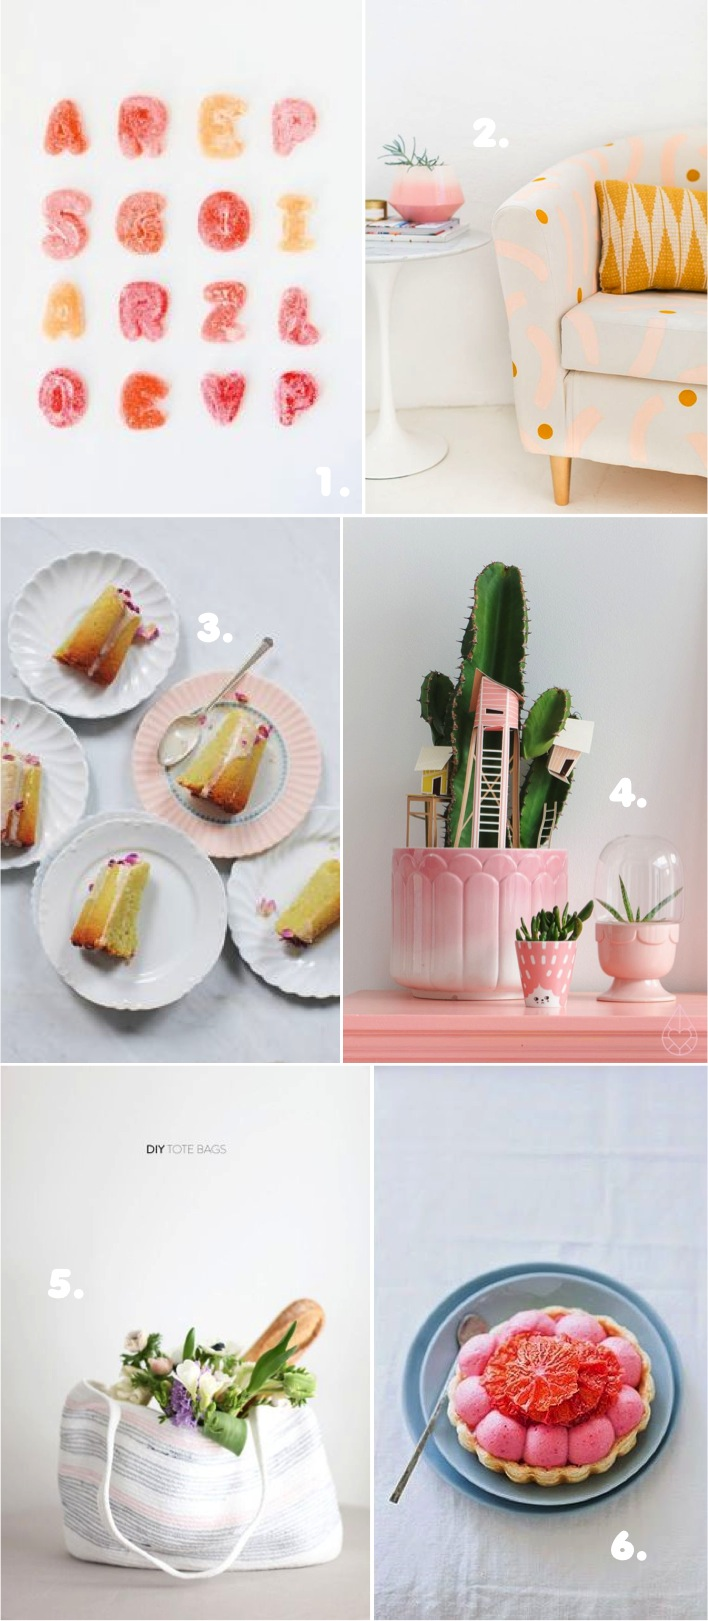 DIY roundup in salmon pink and grey